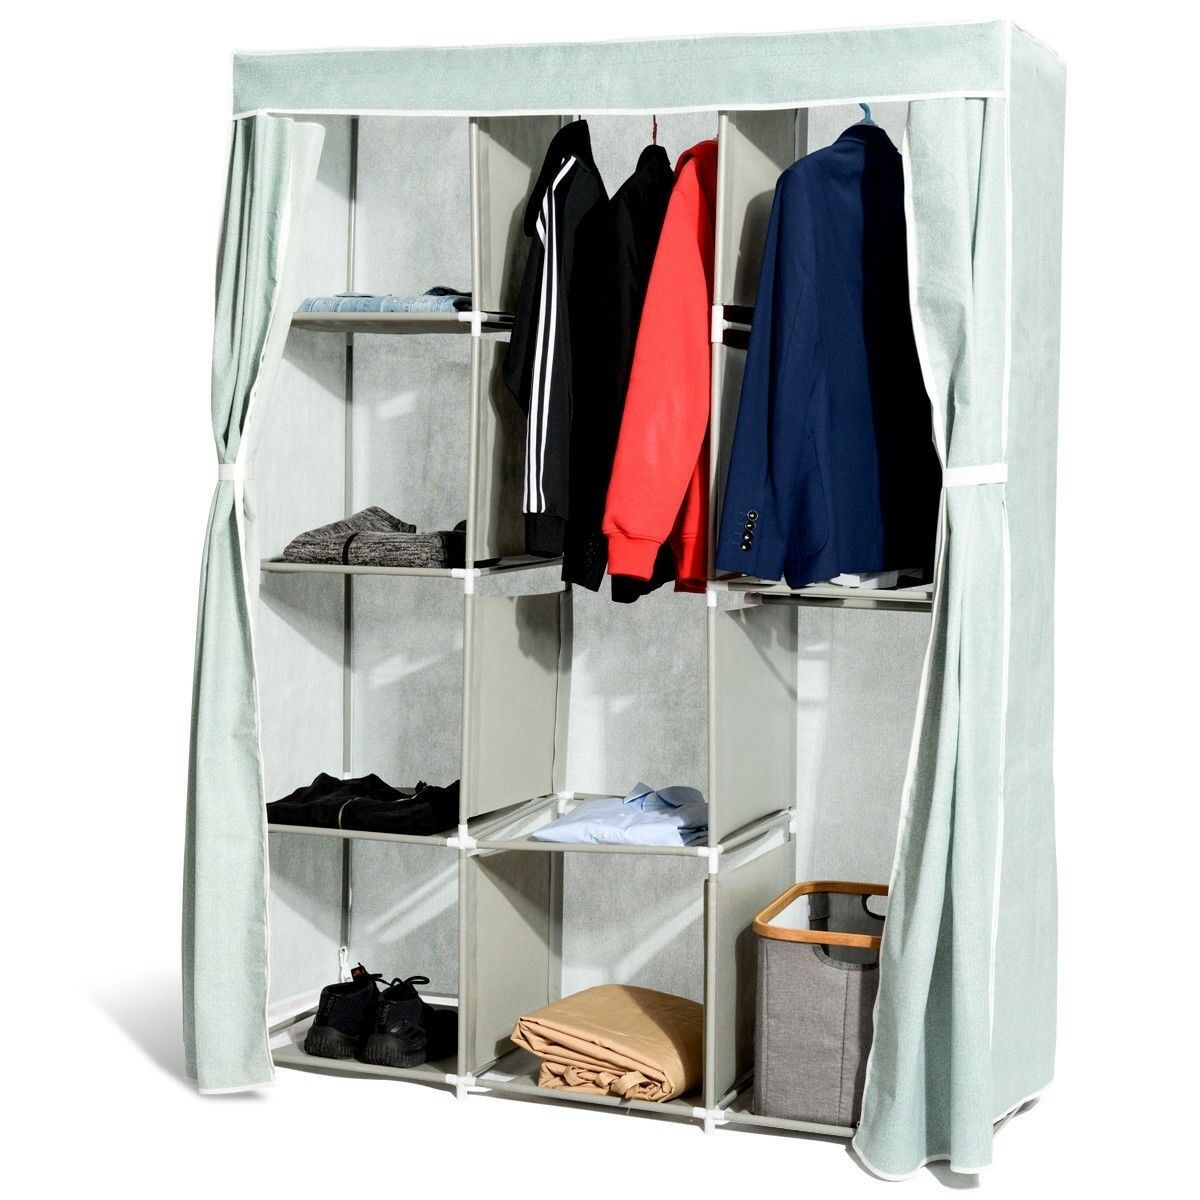 Wardrobe Simplicity Clothes Storage Cupboard with 1 Shelves /& Hanging Rail Ultra-Durable Powder Coated Steel Frame 110x45x175 CHENGYI Color : A